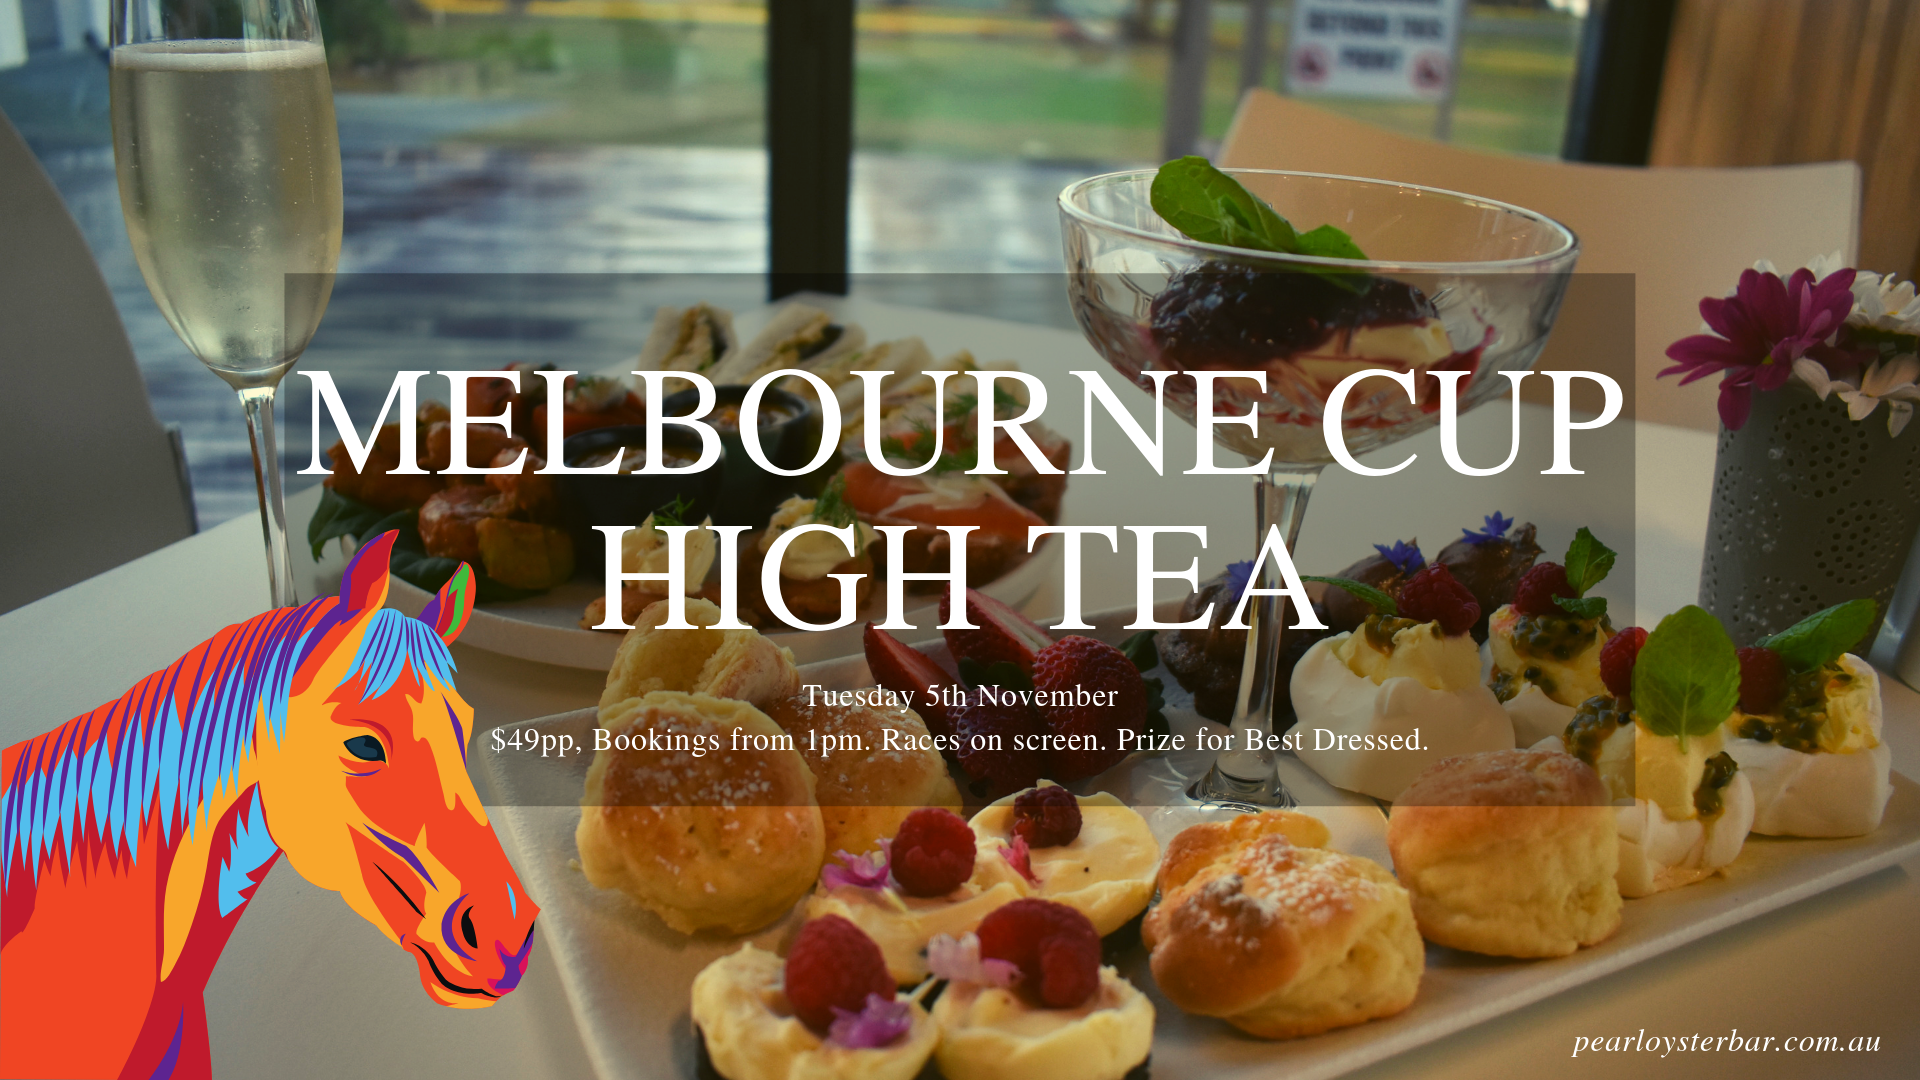 FB Event melbourne cup high tea.png